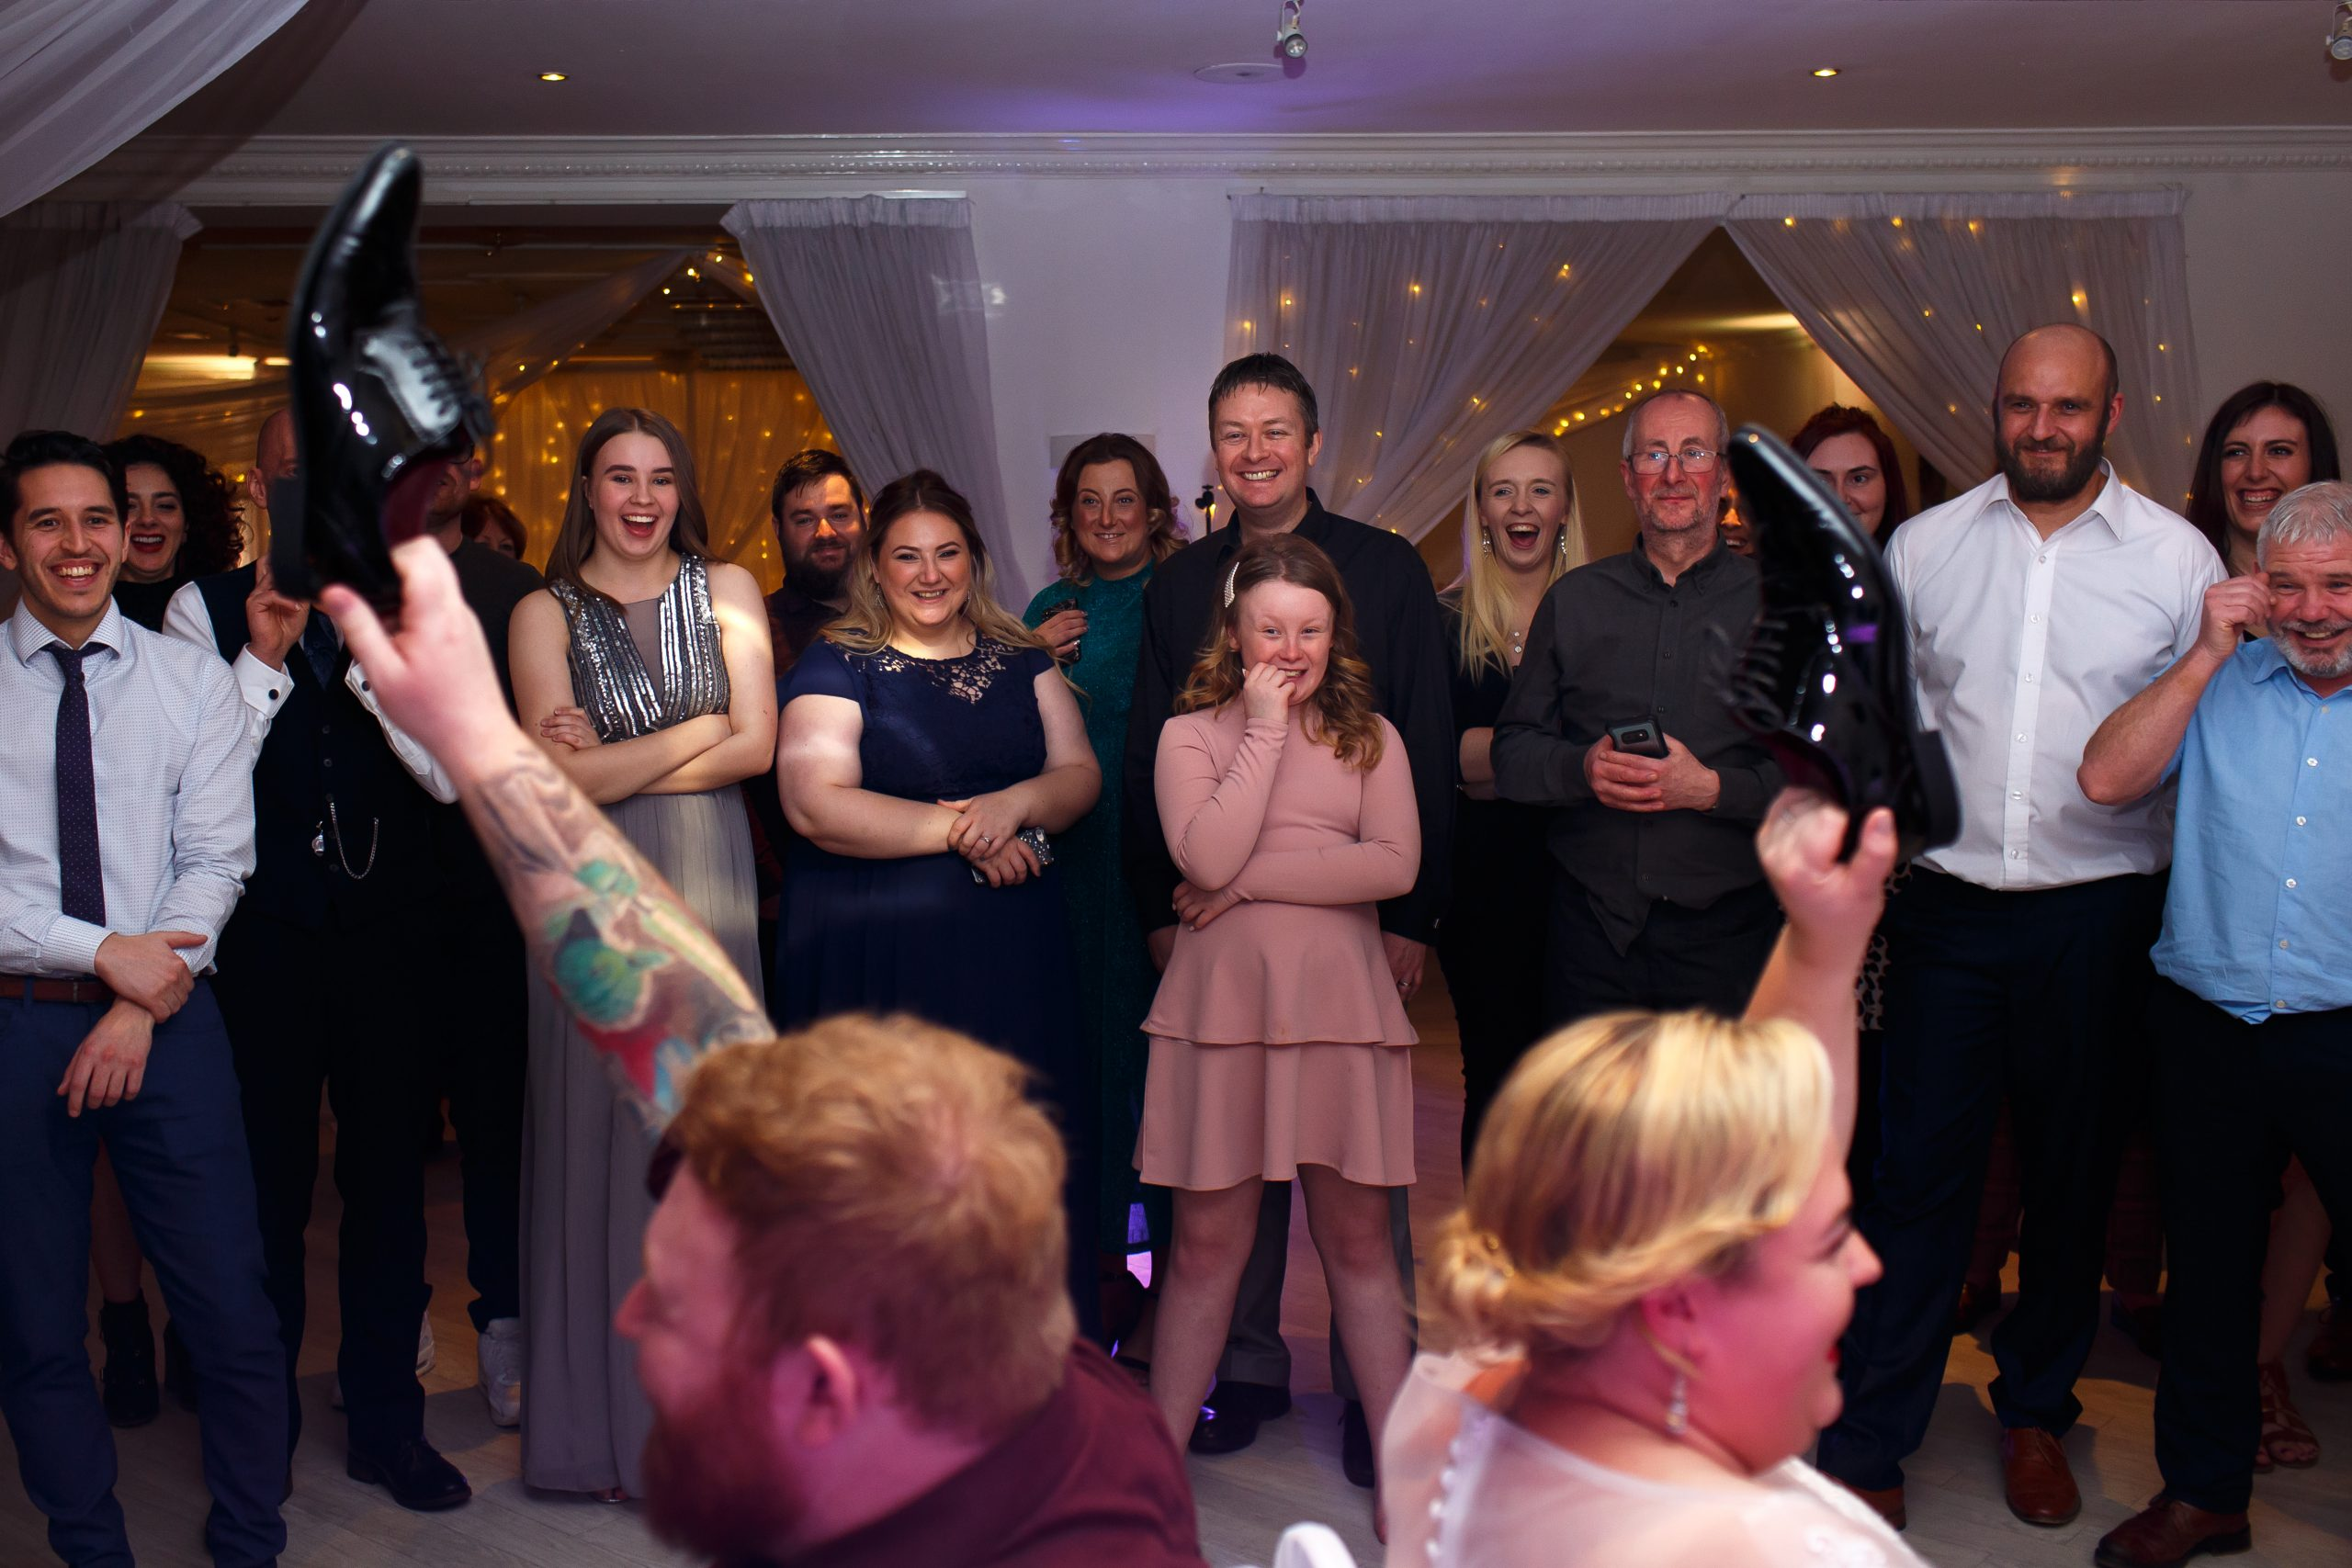 Wedding guests laughing as the bride and groom play mr and mrs during wedding reception | Foxfields Country House Wedding Photography